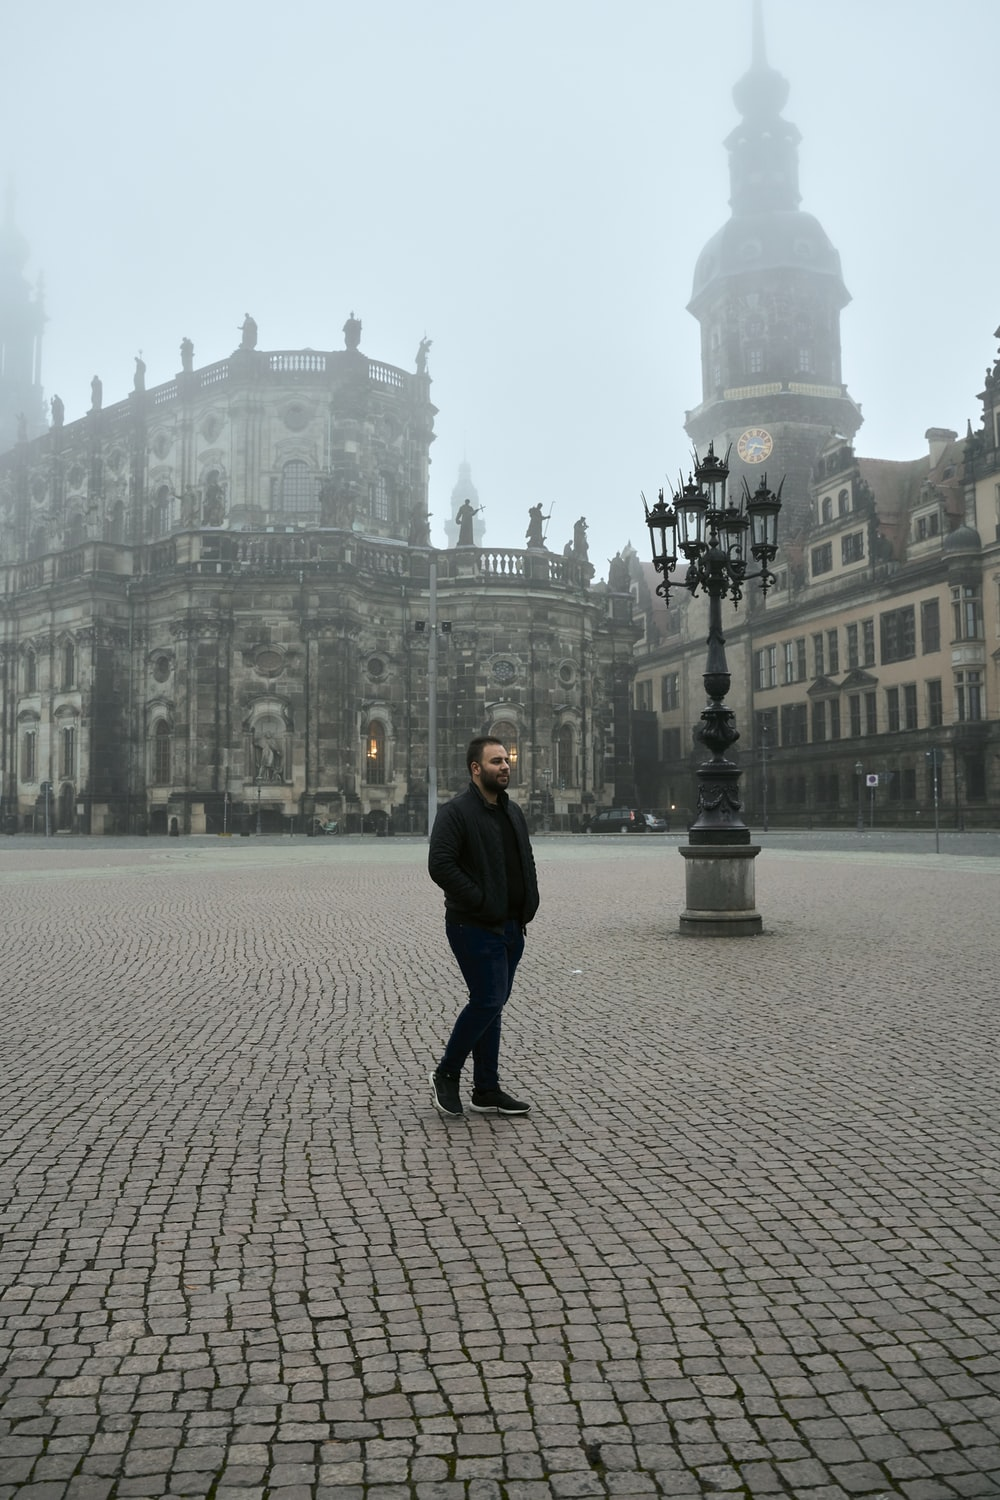 man walking near lamppost and buildings during day